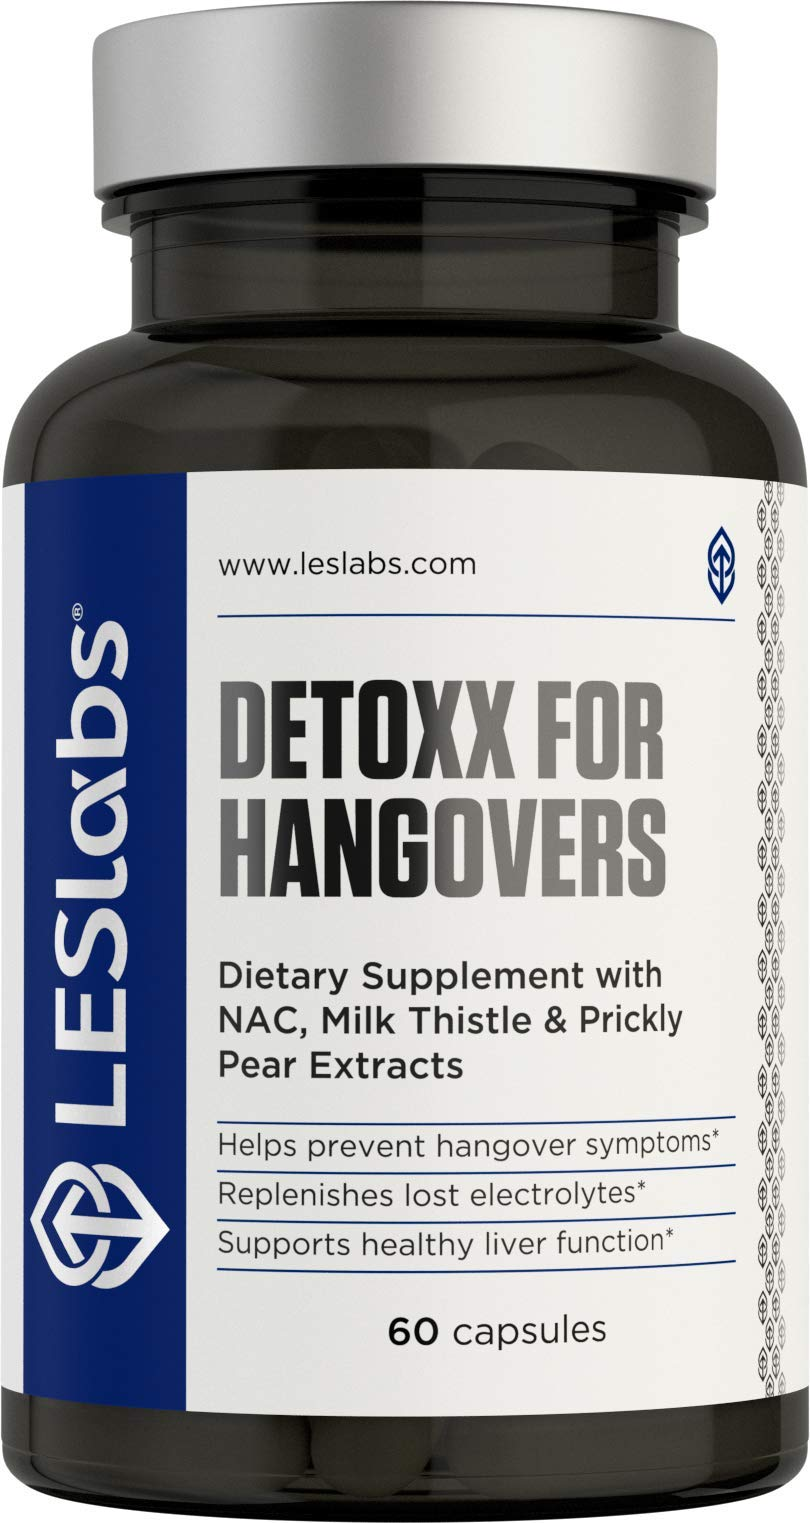 LES Labs DeToxx for Hangovers, Natural Supplement for Liver Support & Electrolyte Replenishment, 60 Capsules by LES Labs